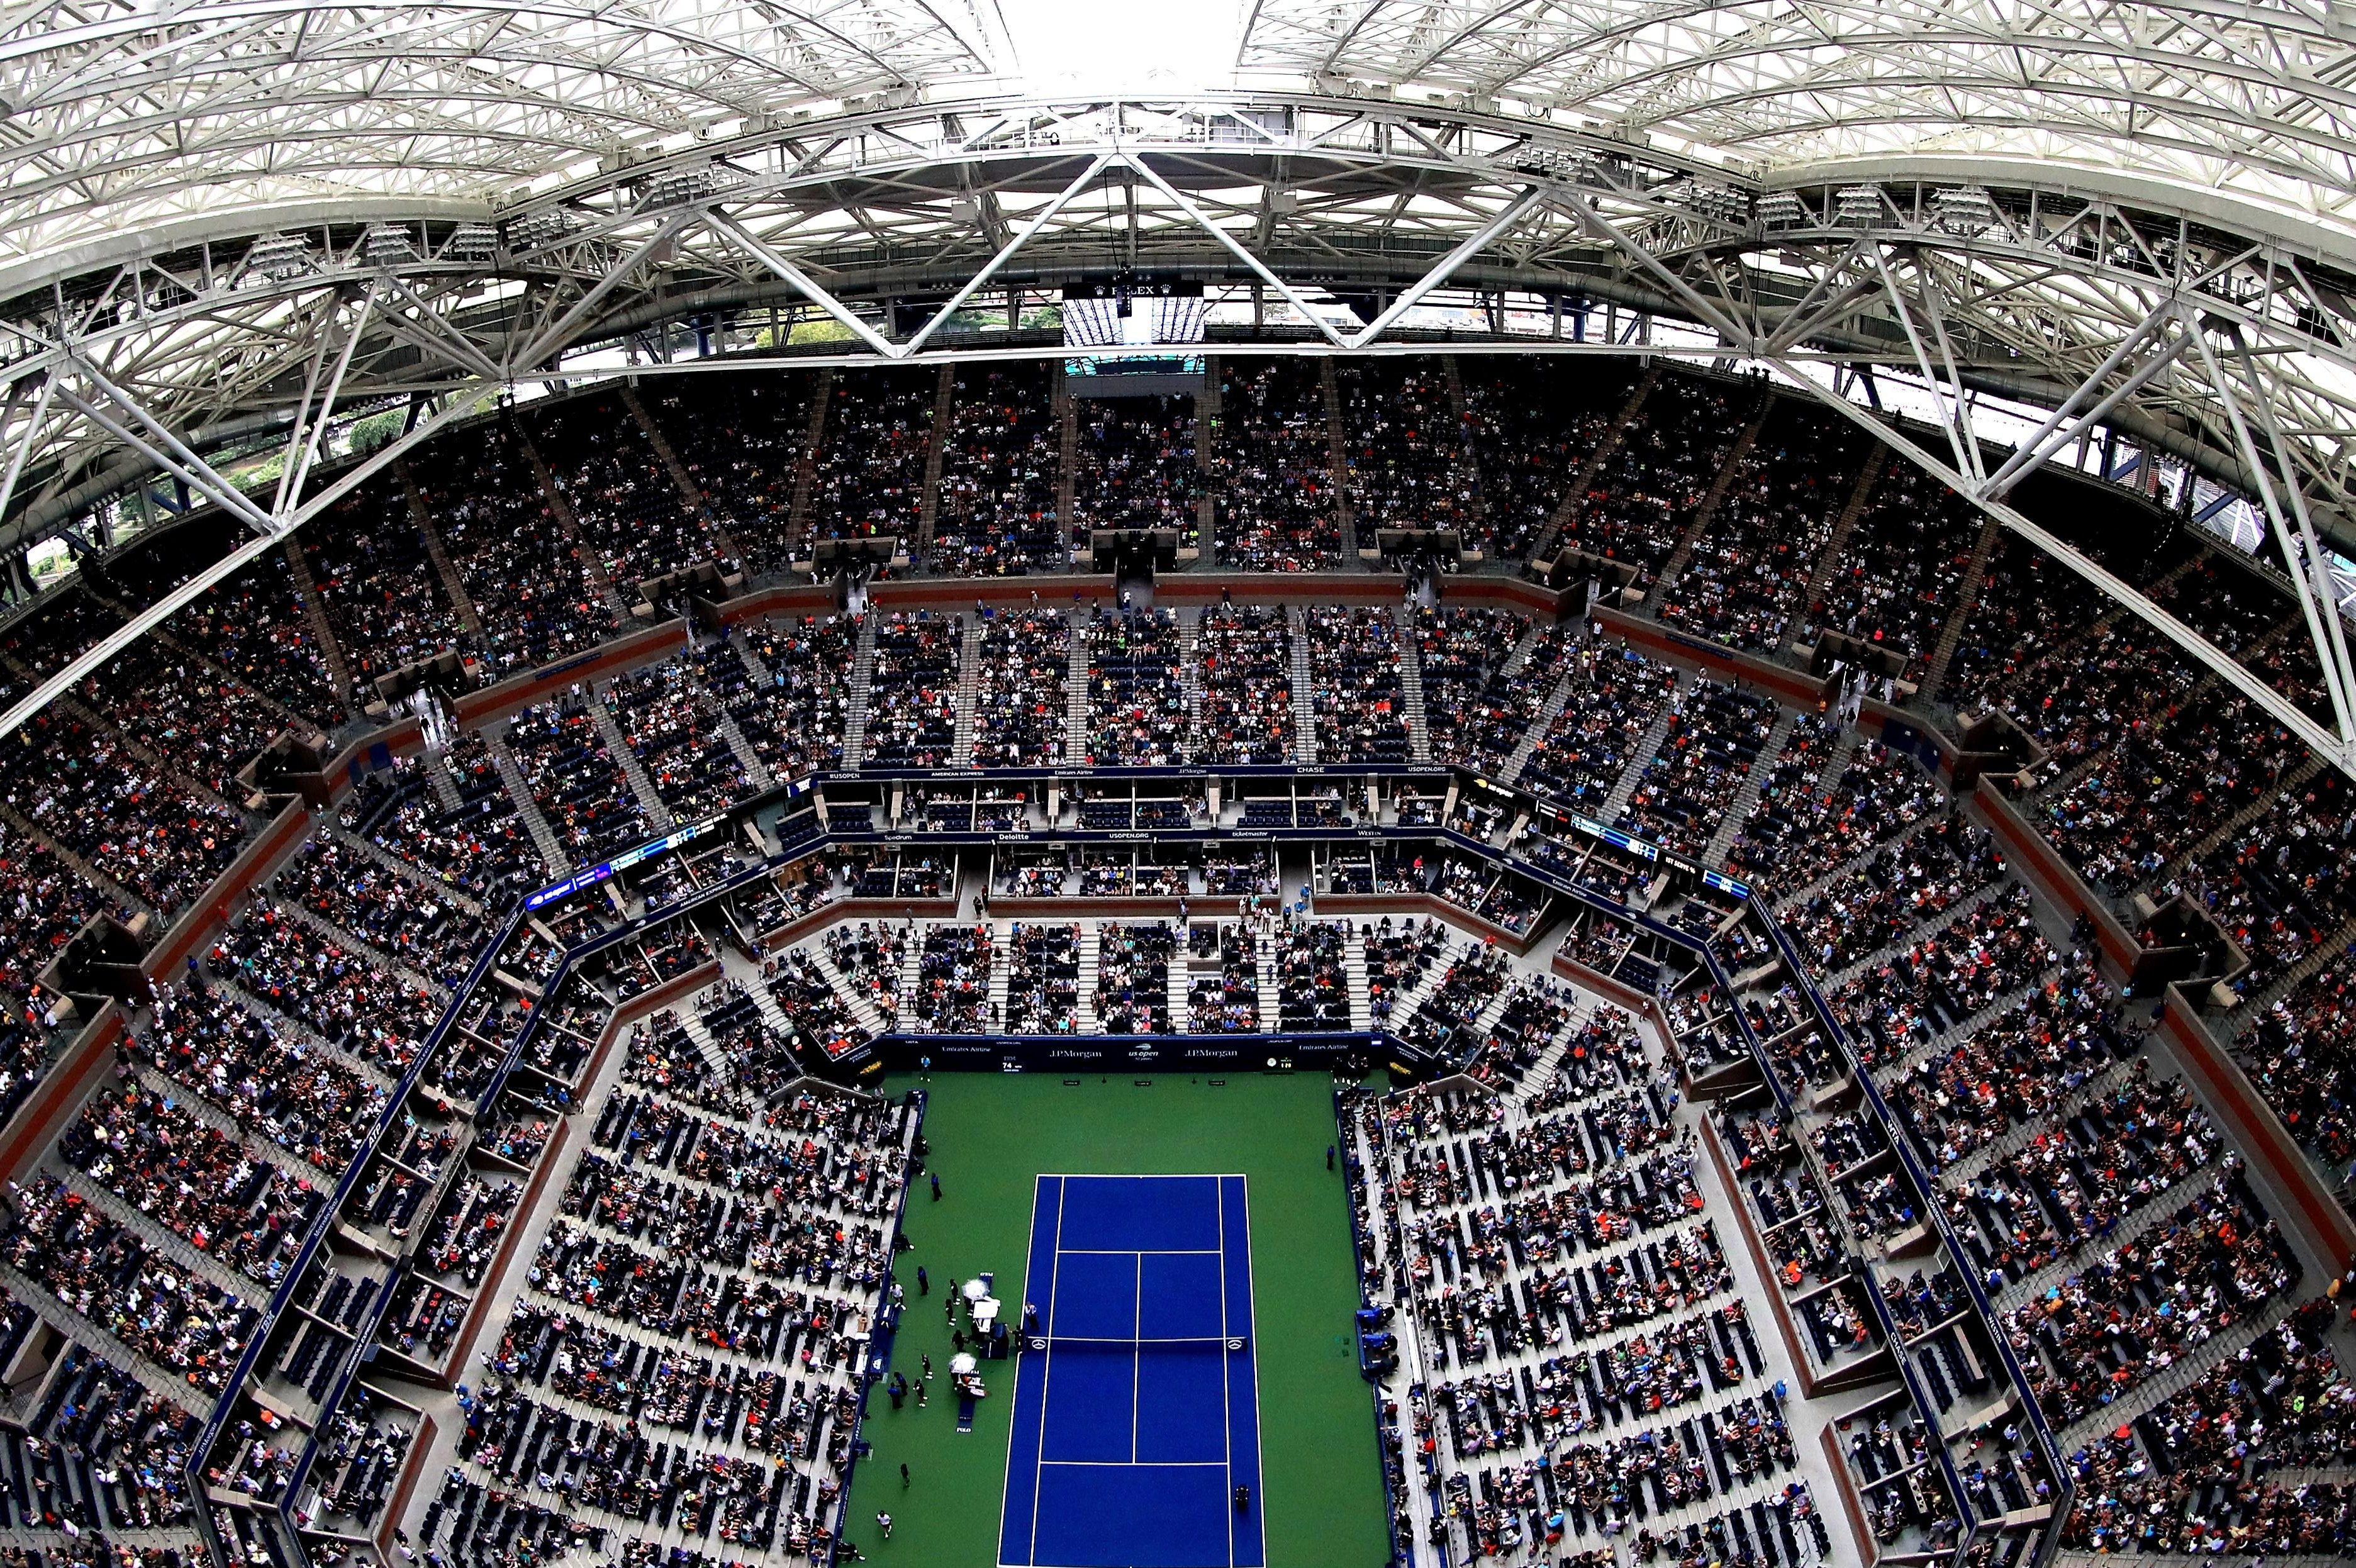 The Arthur Ashe Stadium is the largest tennis venue in the world